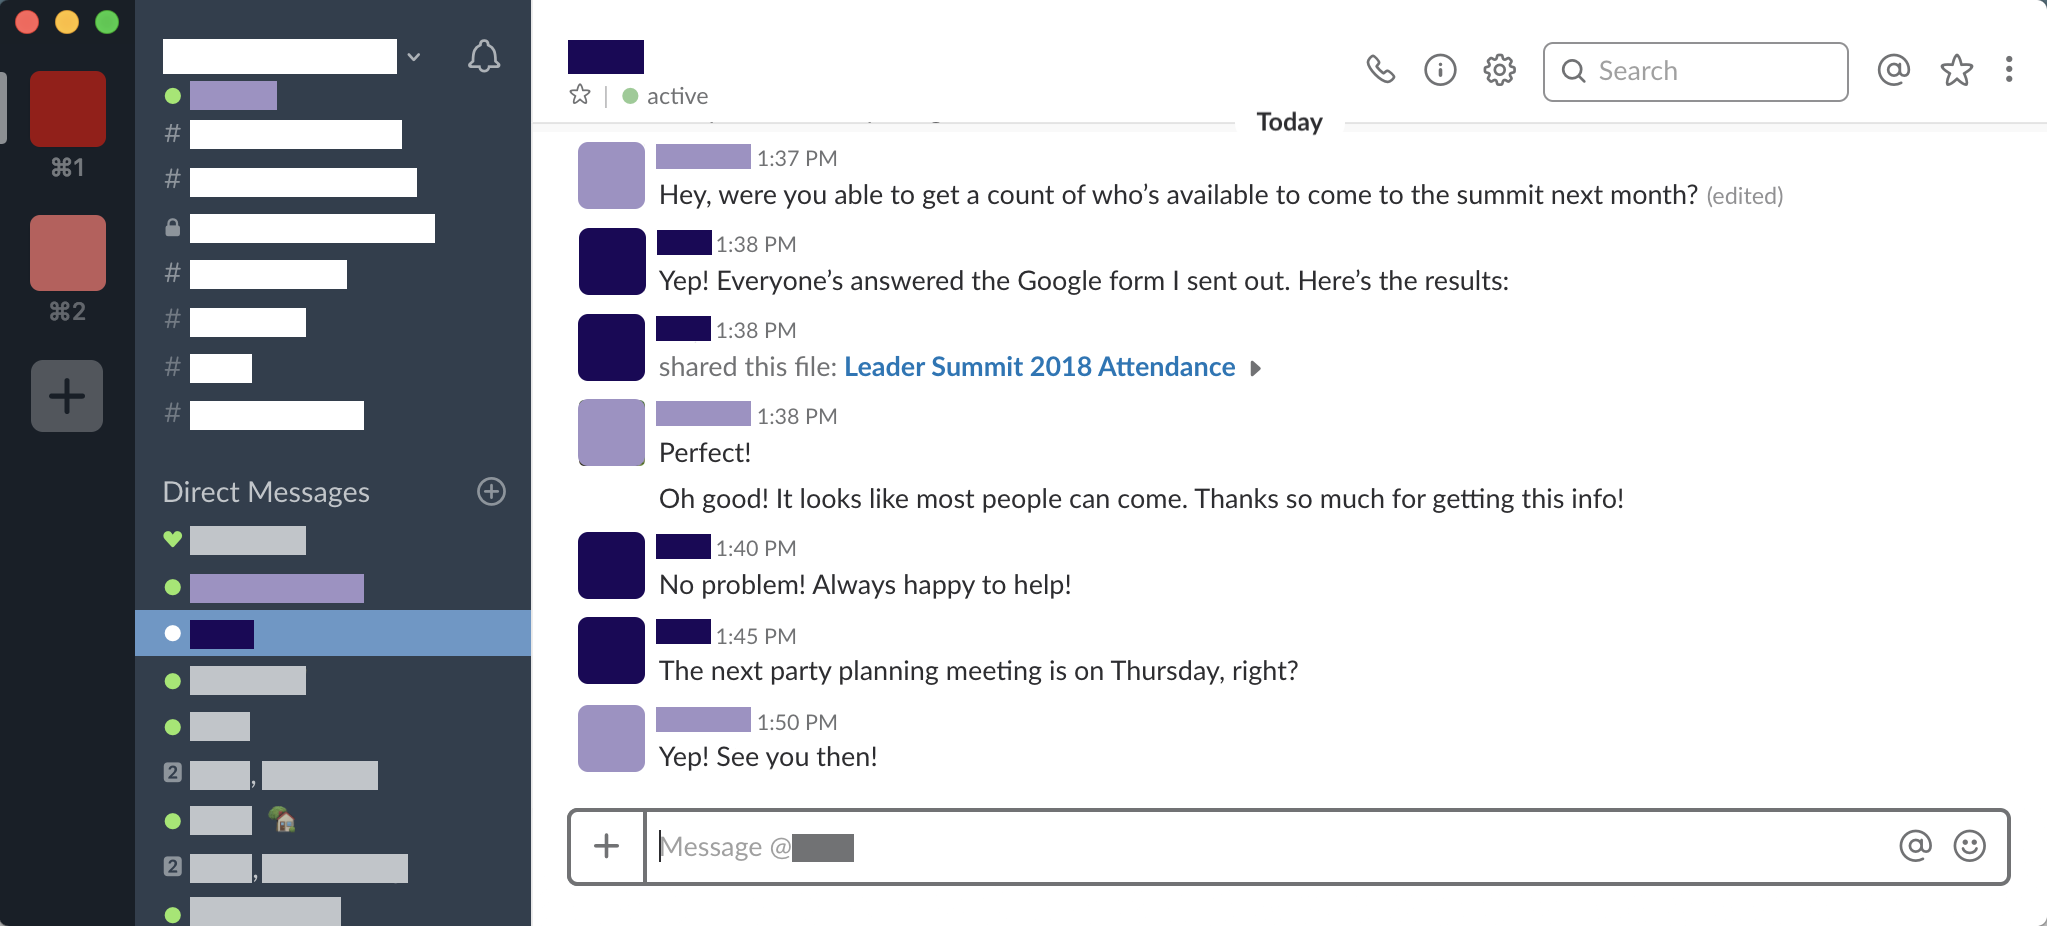 Screenshot of an online chat conversation between two coworkers discussing an upcoming event. Coworker 1: Hey were you able to get a count of who's available to come to the summit next month? Coworker 2: Yep! Everyone'es answered the Google form I sent out. Here's the results (file is shared). Coworker 1: Perfect! Oh good! It looks like most people can come. Thanks so much for getting this info! Coworker 2: No problem! Always happy to help. The next party planning meeting is on Thursday, right? Coworker 1: Yep! See you then!